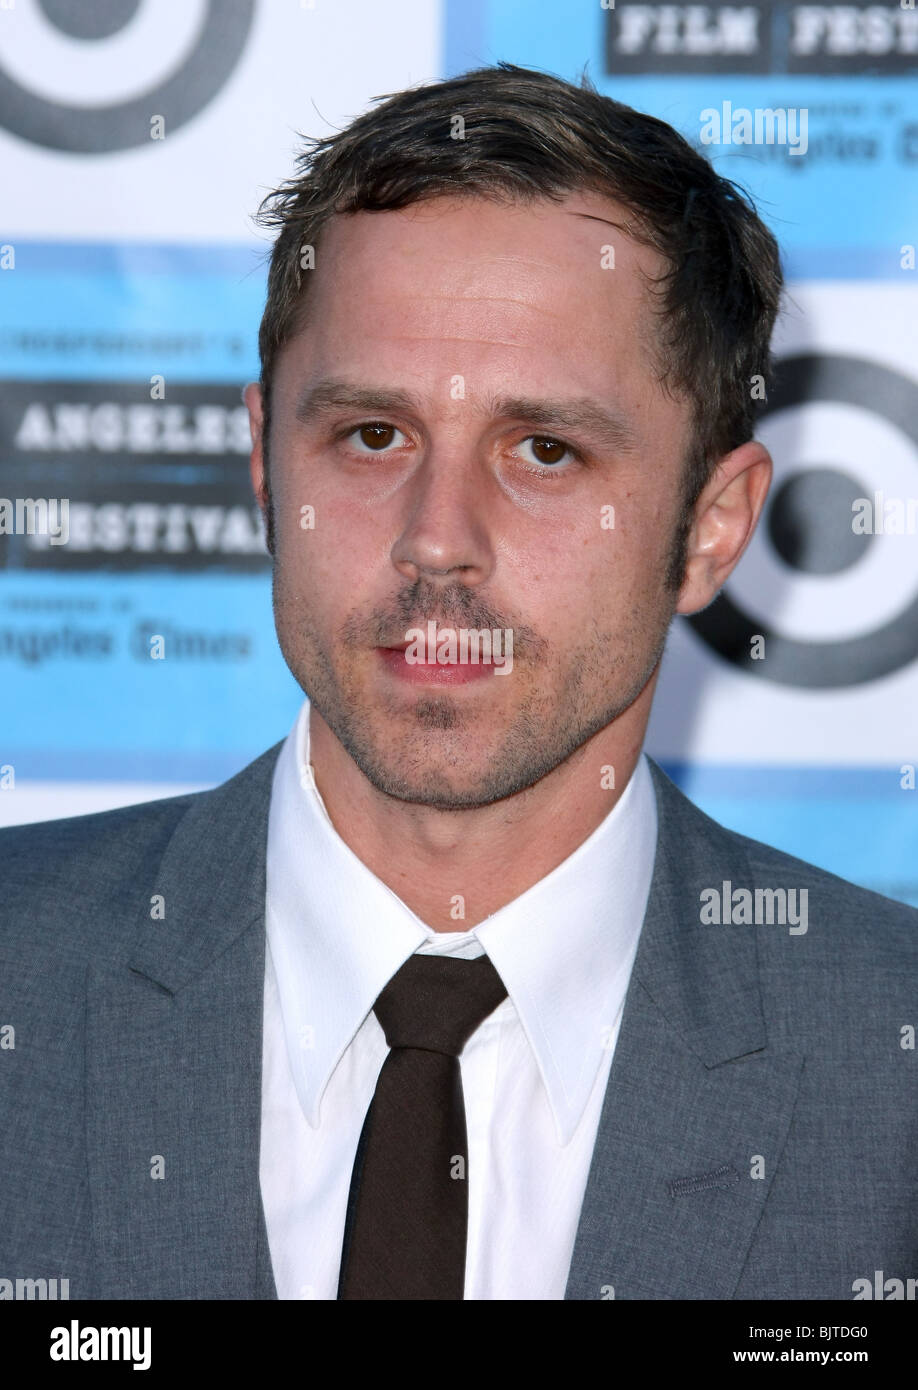 GIOVANNI RIBISI PUBLIC ENEMIES LOS ANGELES PREMIERE AT THE LOS ANGELES FILM FESTIVAL WESTWOOD CA USA 23 June 2009 - Stock Image